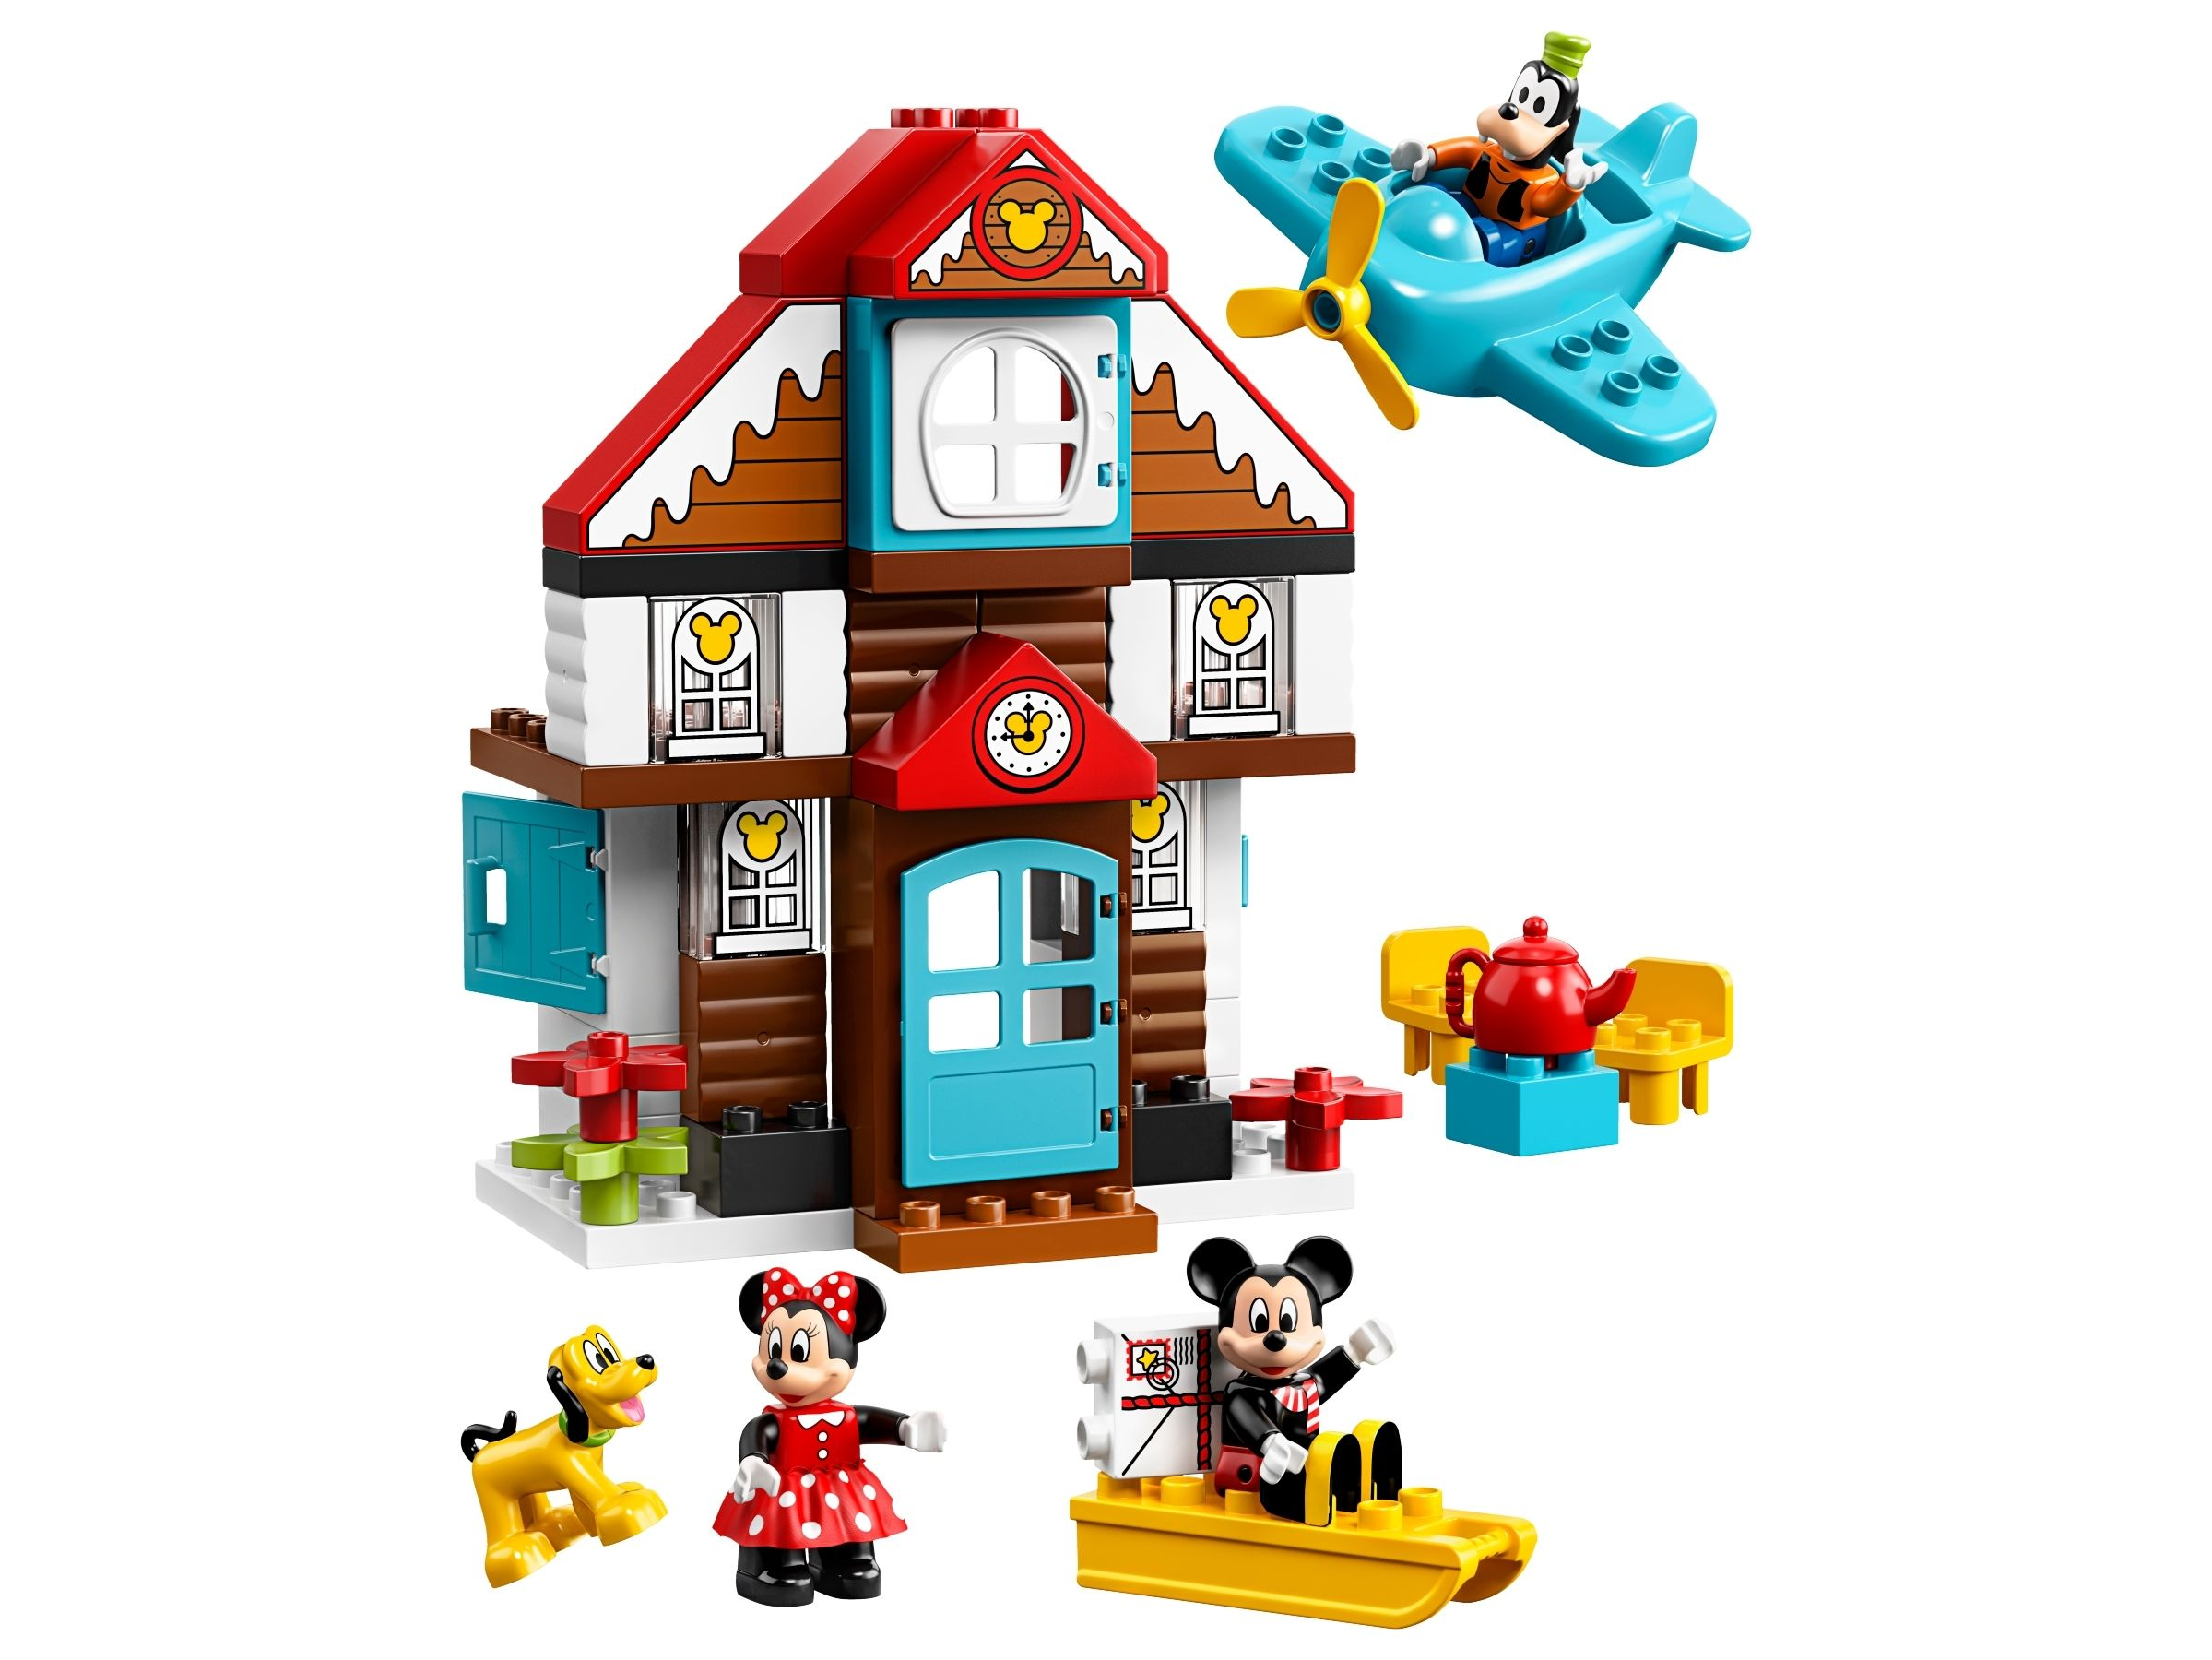 Pin On Toy Ideas For Girls